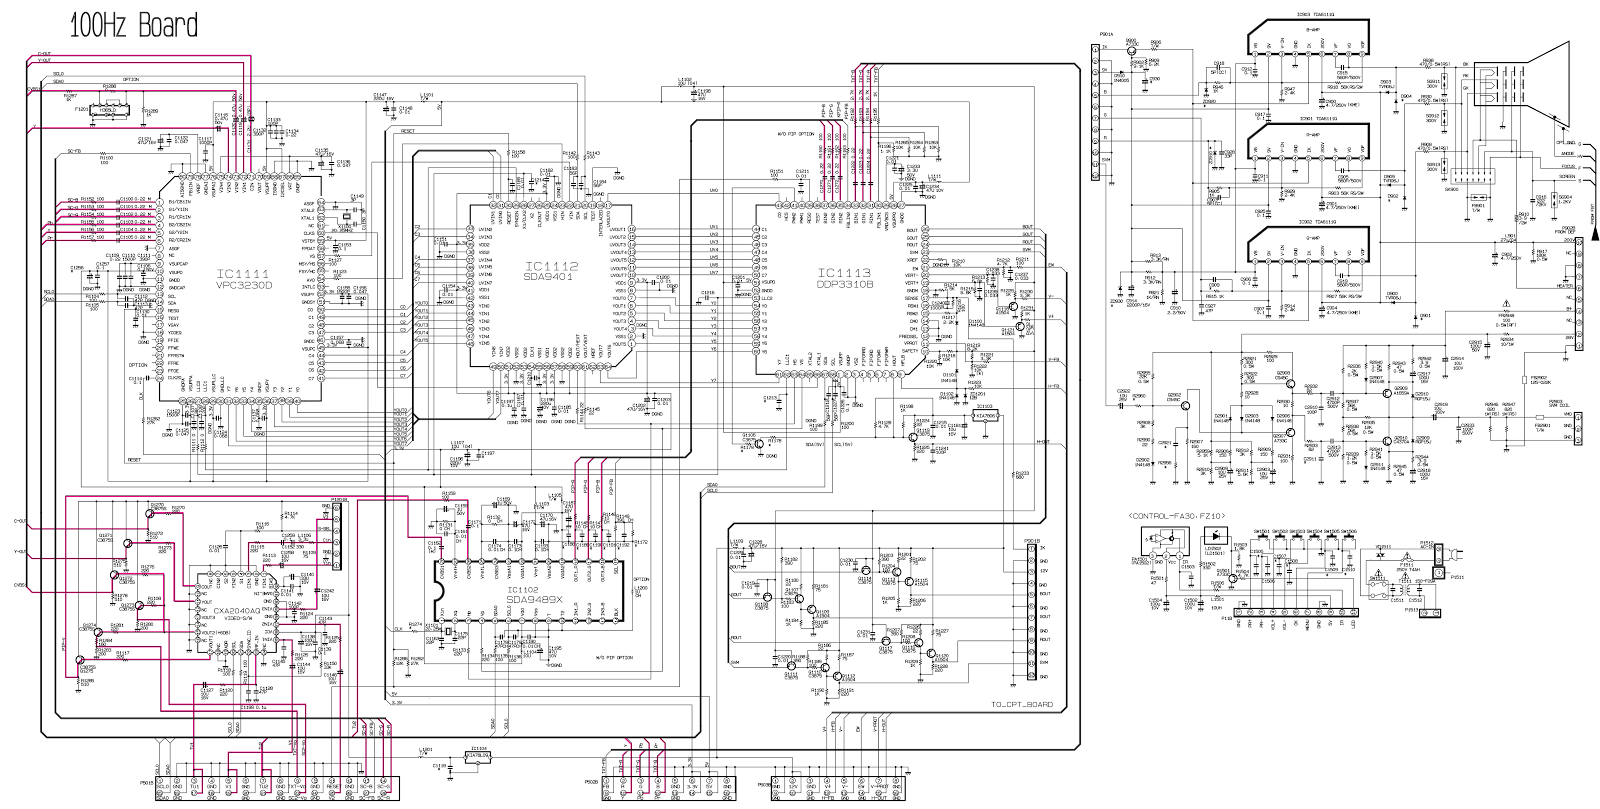 Schematic Diagrams Lg Re28fz10 Re32fz10 100hz Crt Tv